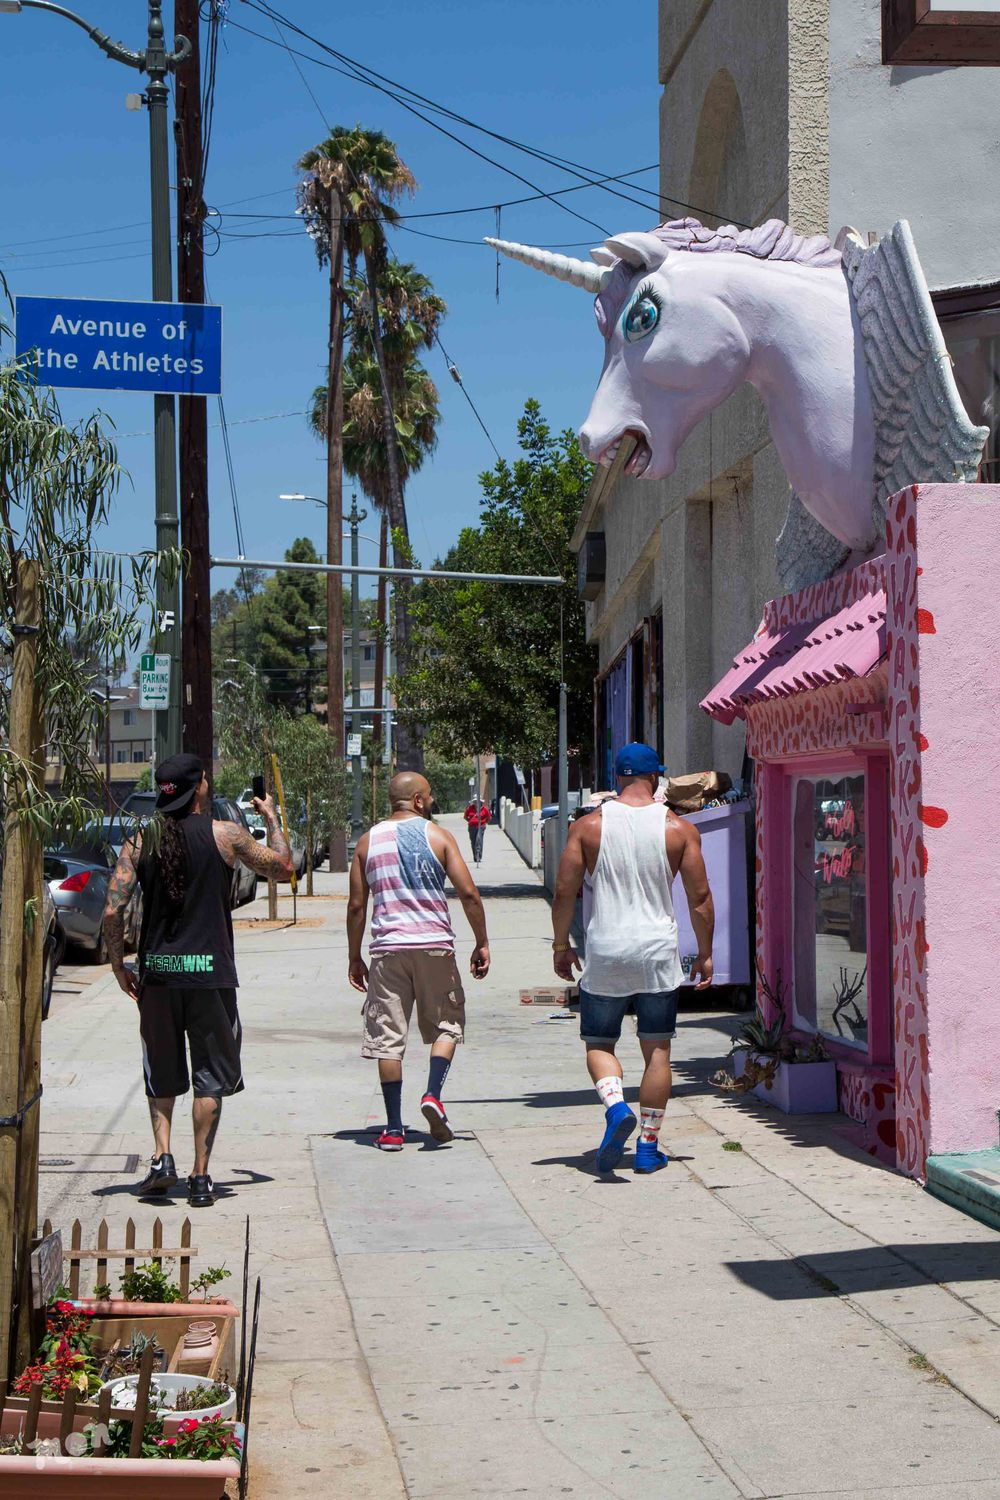 Avenue of the Athletes & the Unicorn Wacky Wacko Storefront